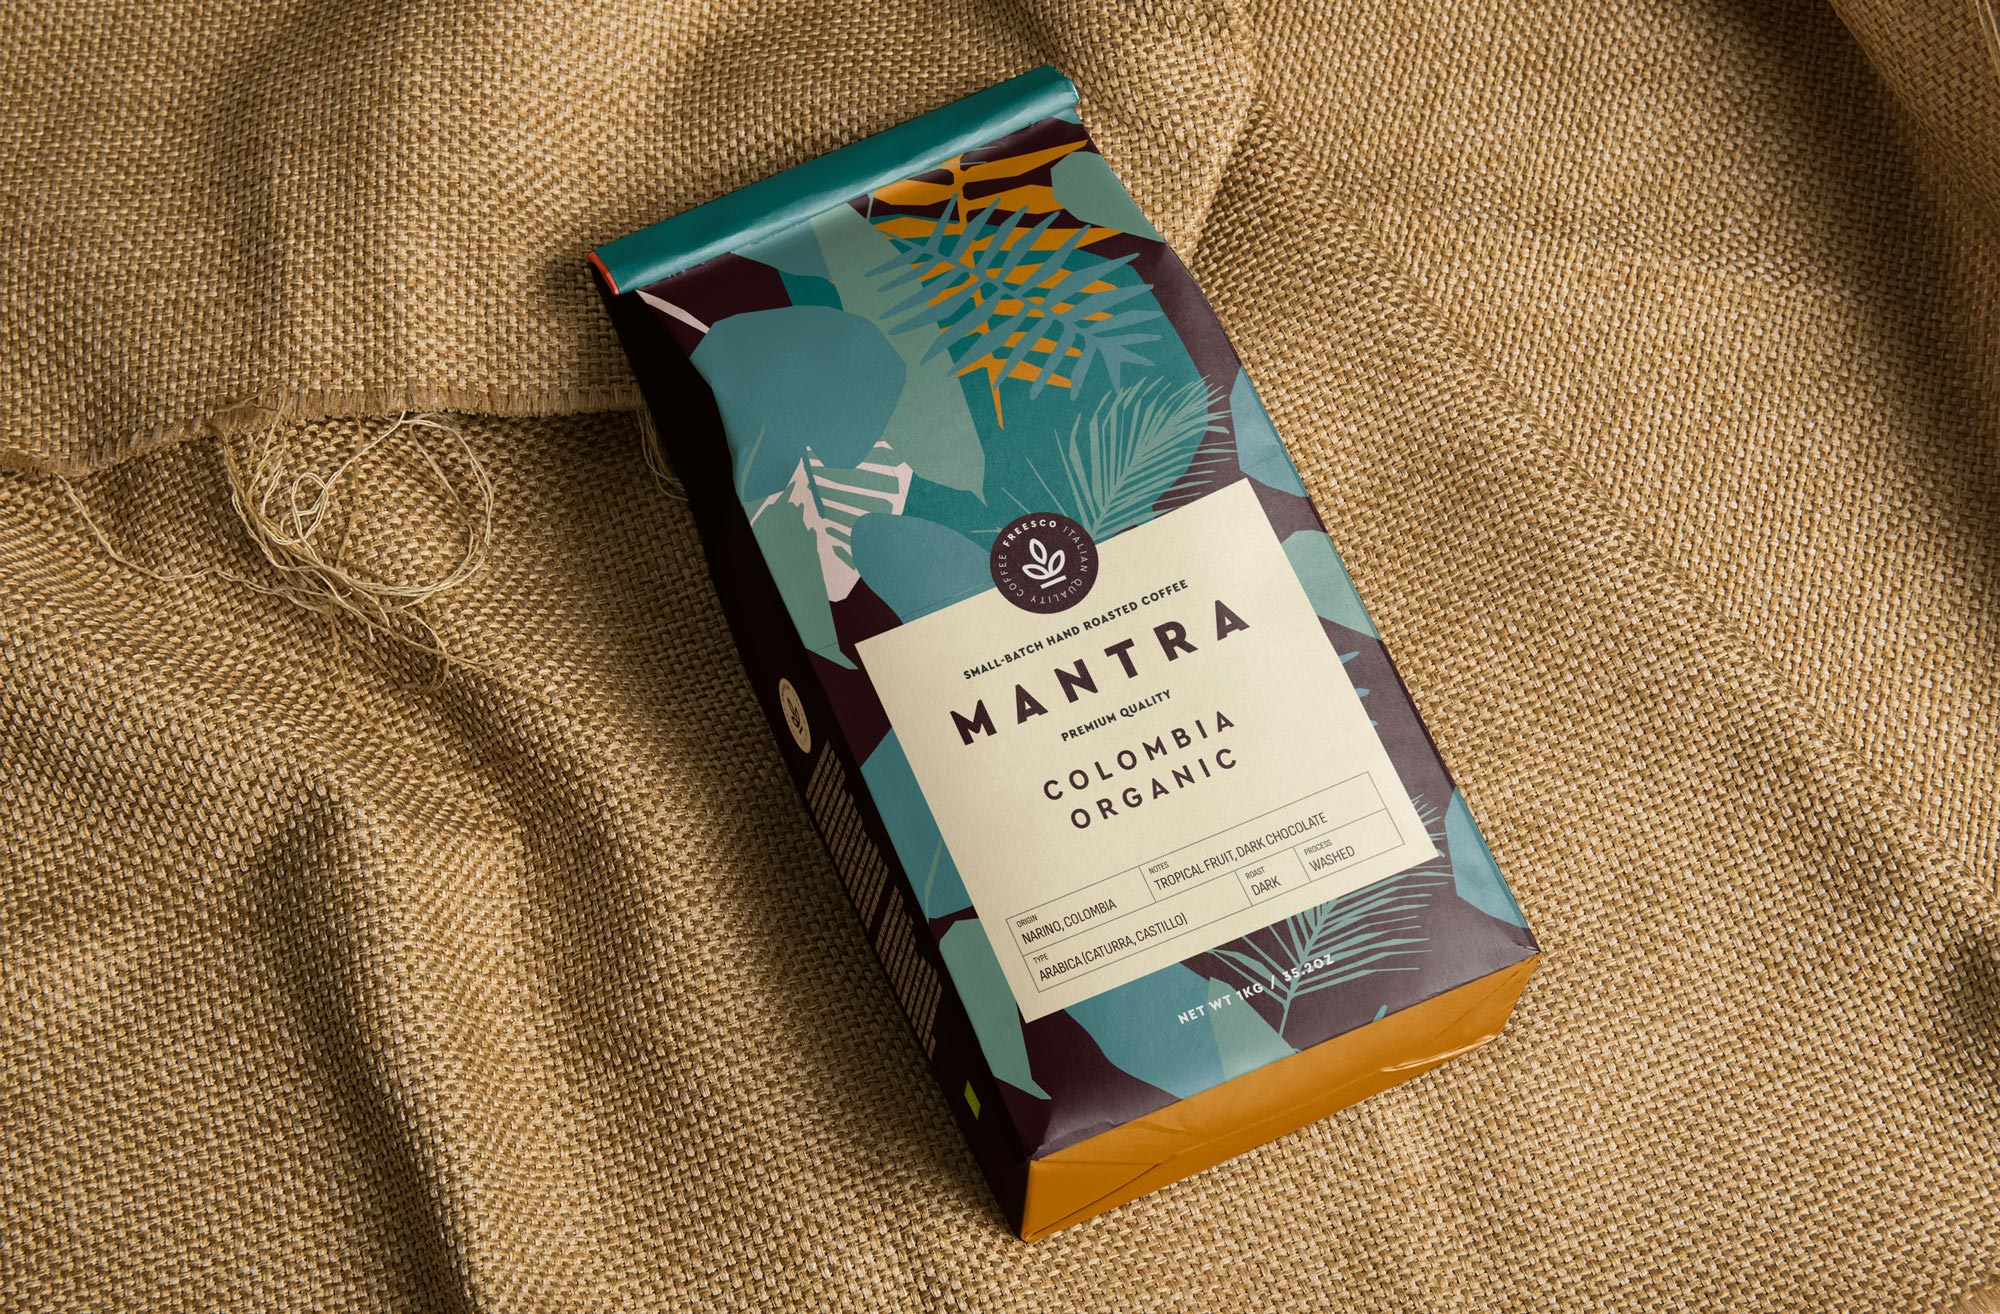 Ethical Mantra Coffee Brand and Packaging Design by Veesion